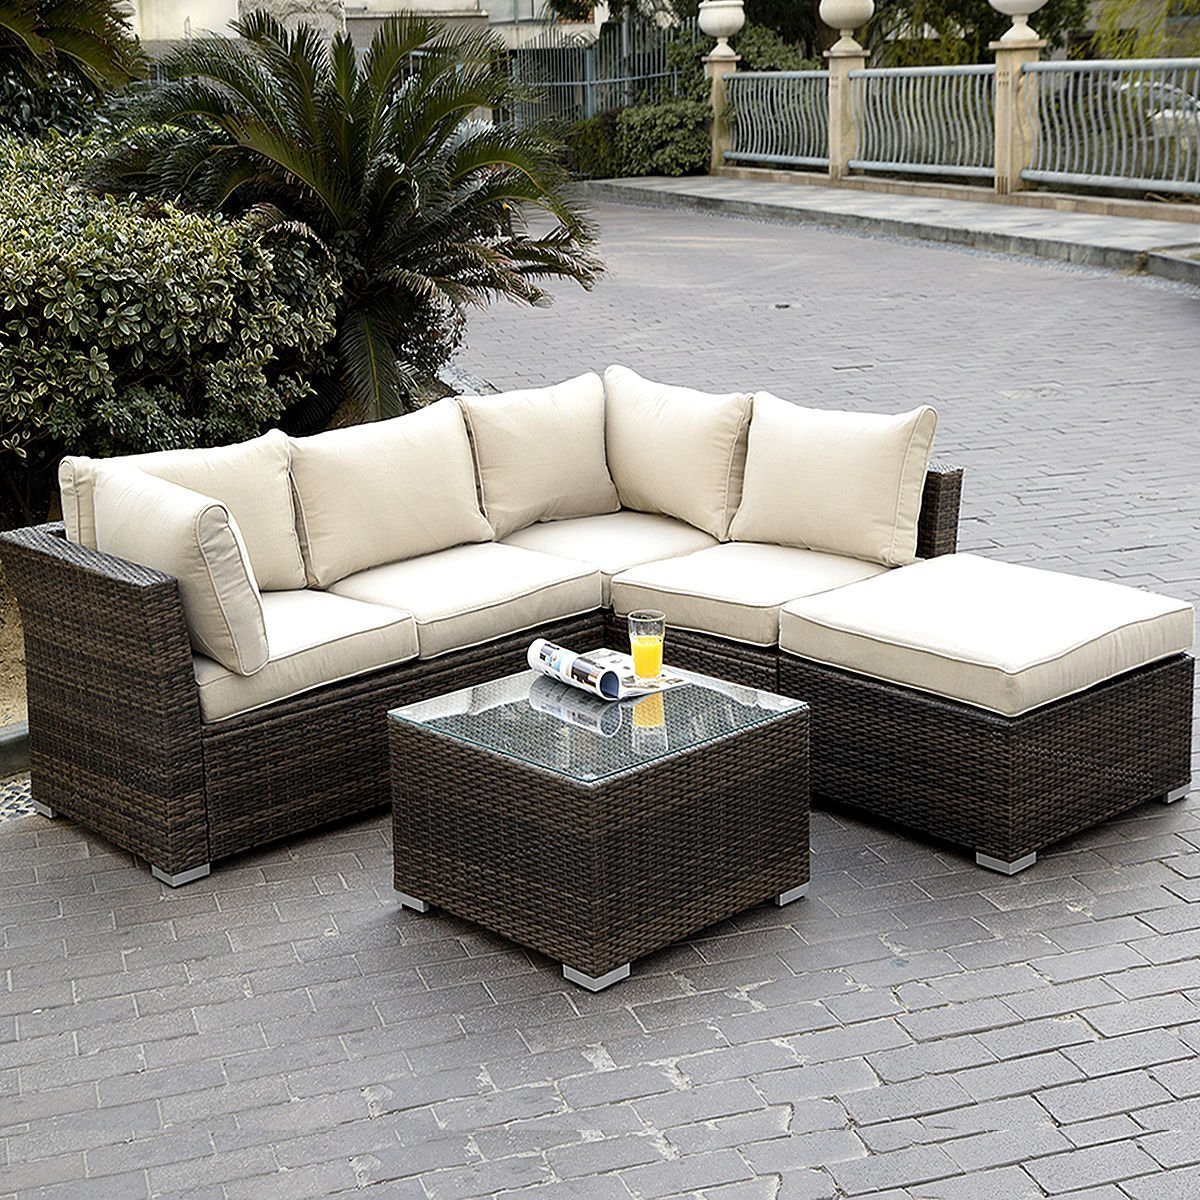 outdoor sofa set cost to reupholster giantex 4pc wicker rattan sectional